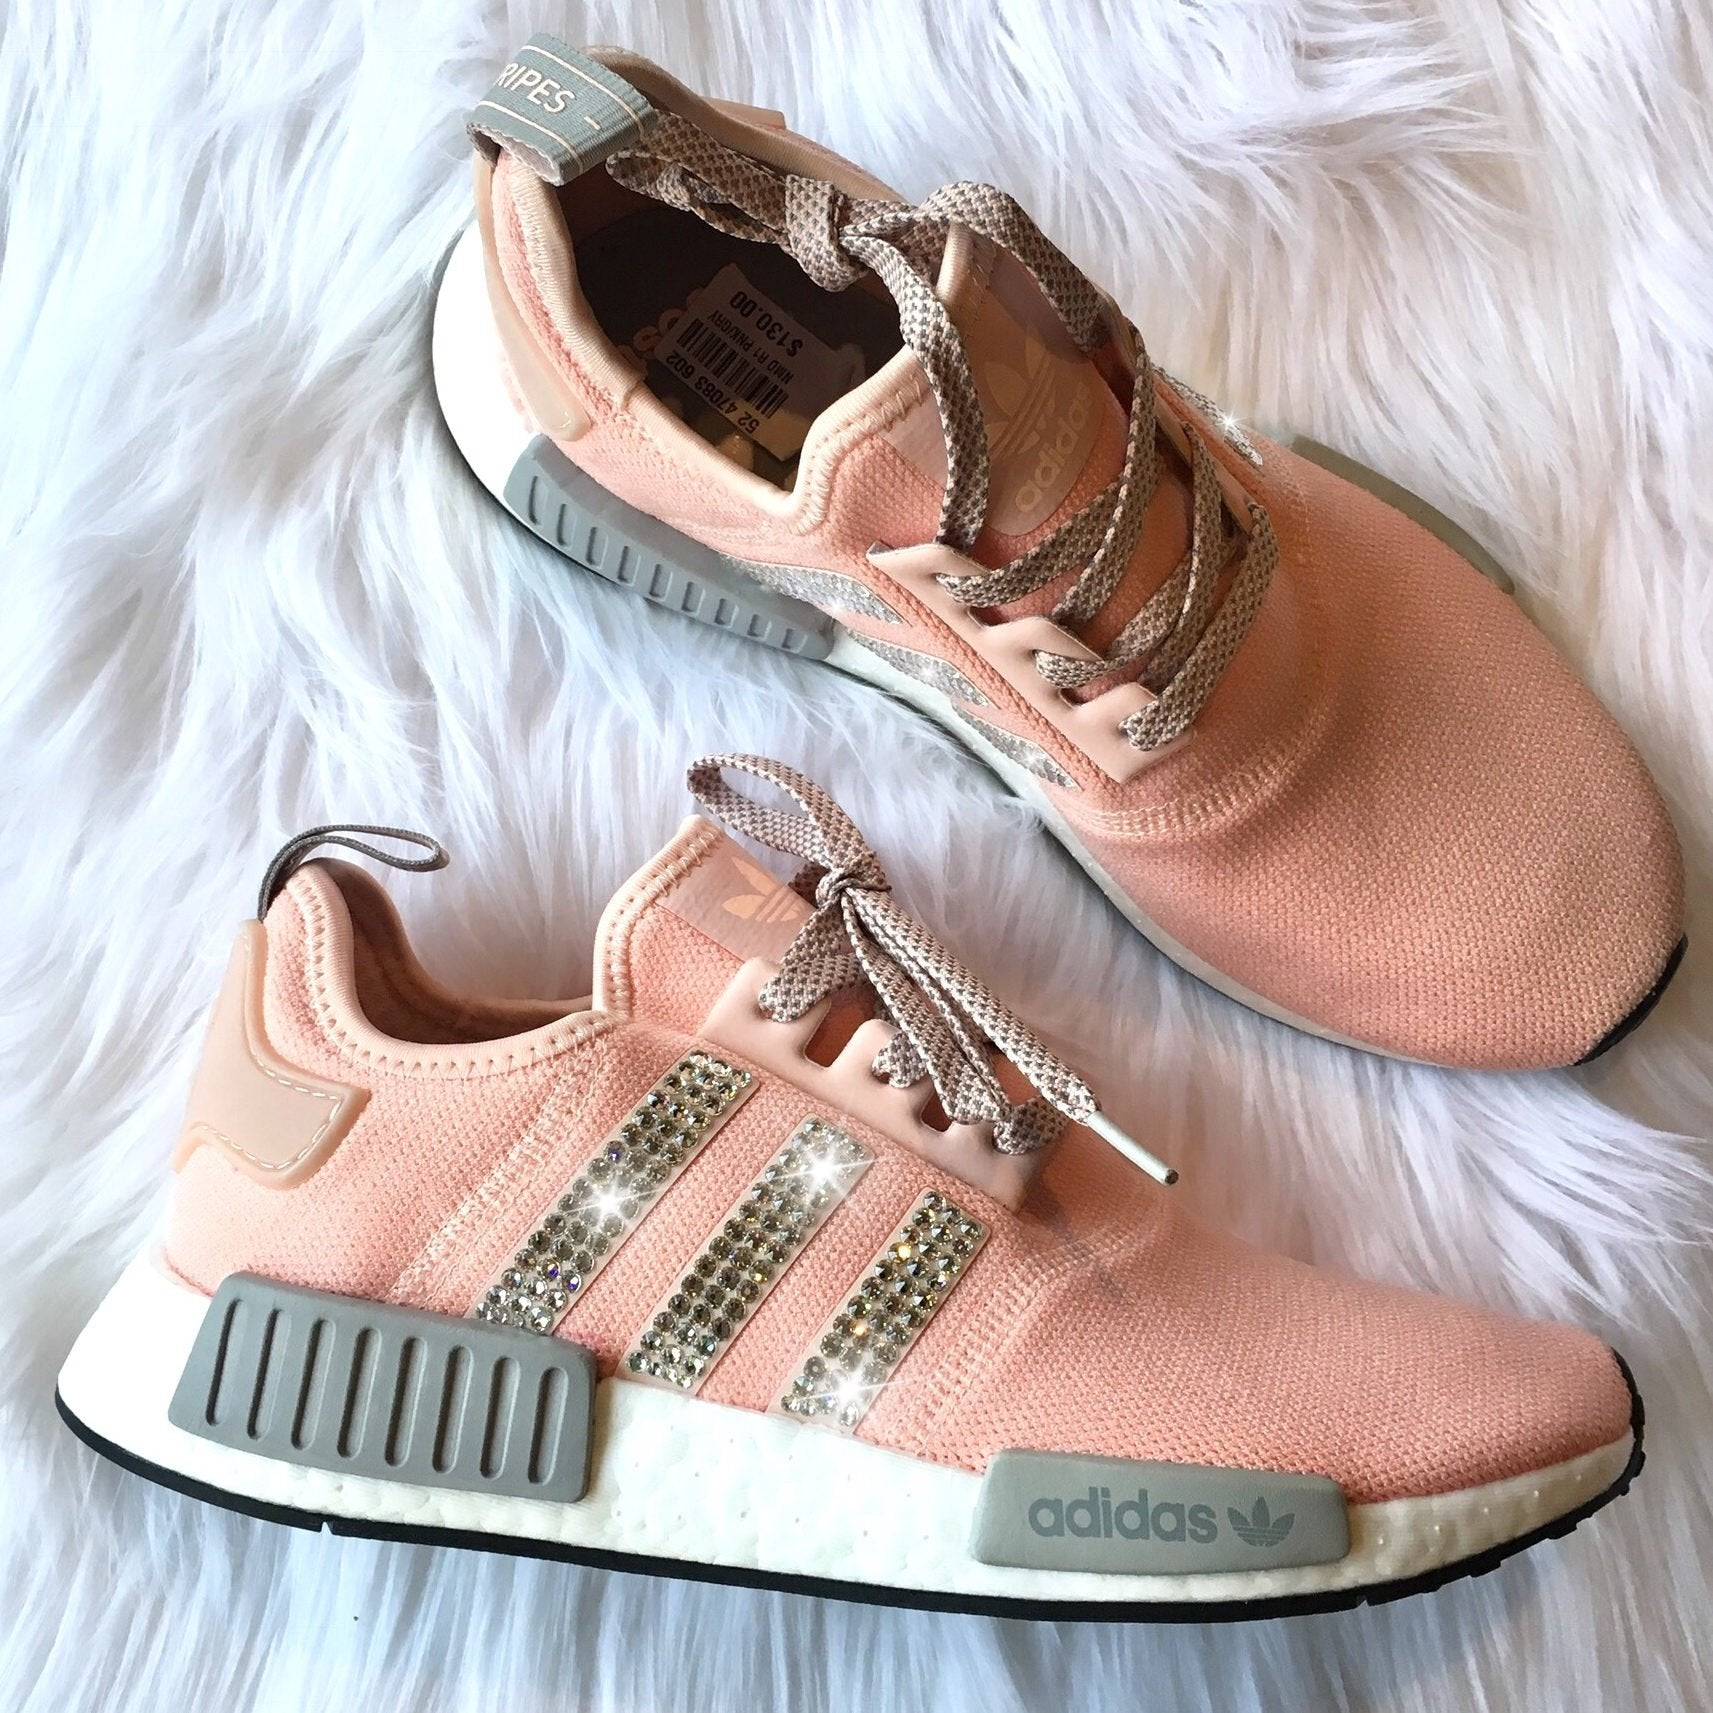 e1e80fdc8 ... Vapour Pink  Bling Adidas NMD with Swarovski Crystals   Women s  Originals NMD R1 Runners Casual Shoes   Vapour ...